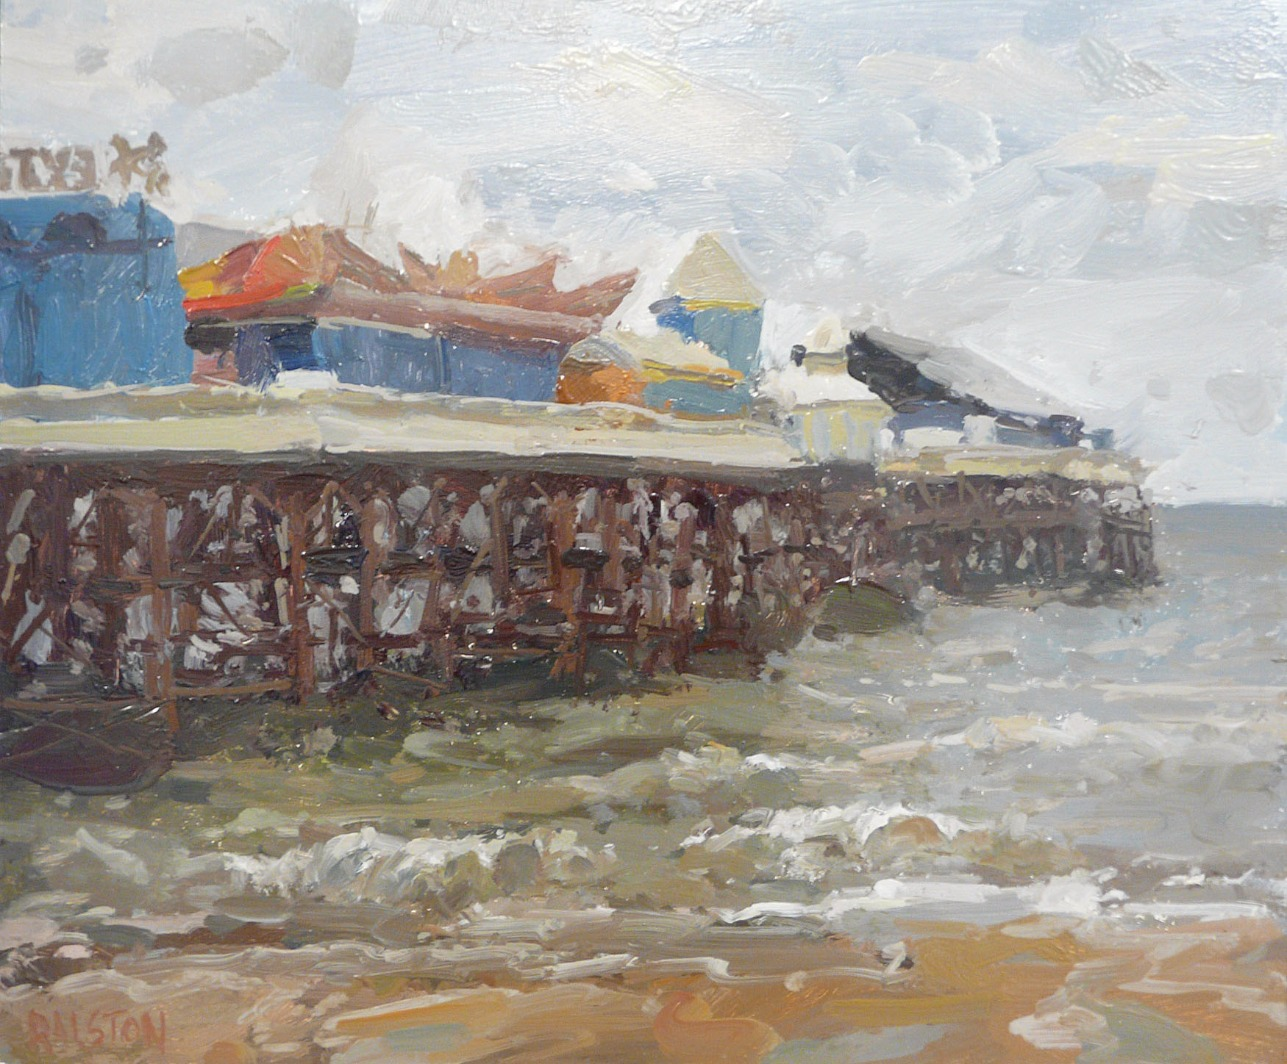 Central Pier, North Side by Adam Ralston, Sea | Northern | Nostalgic | Family